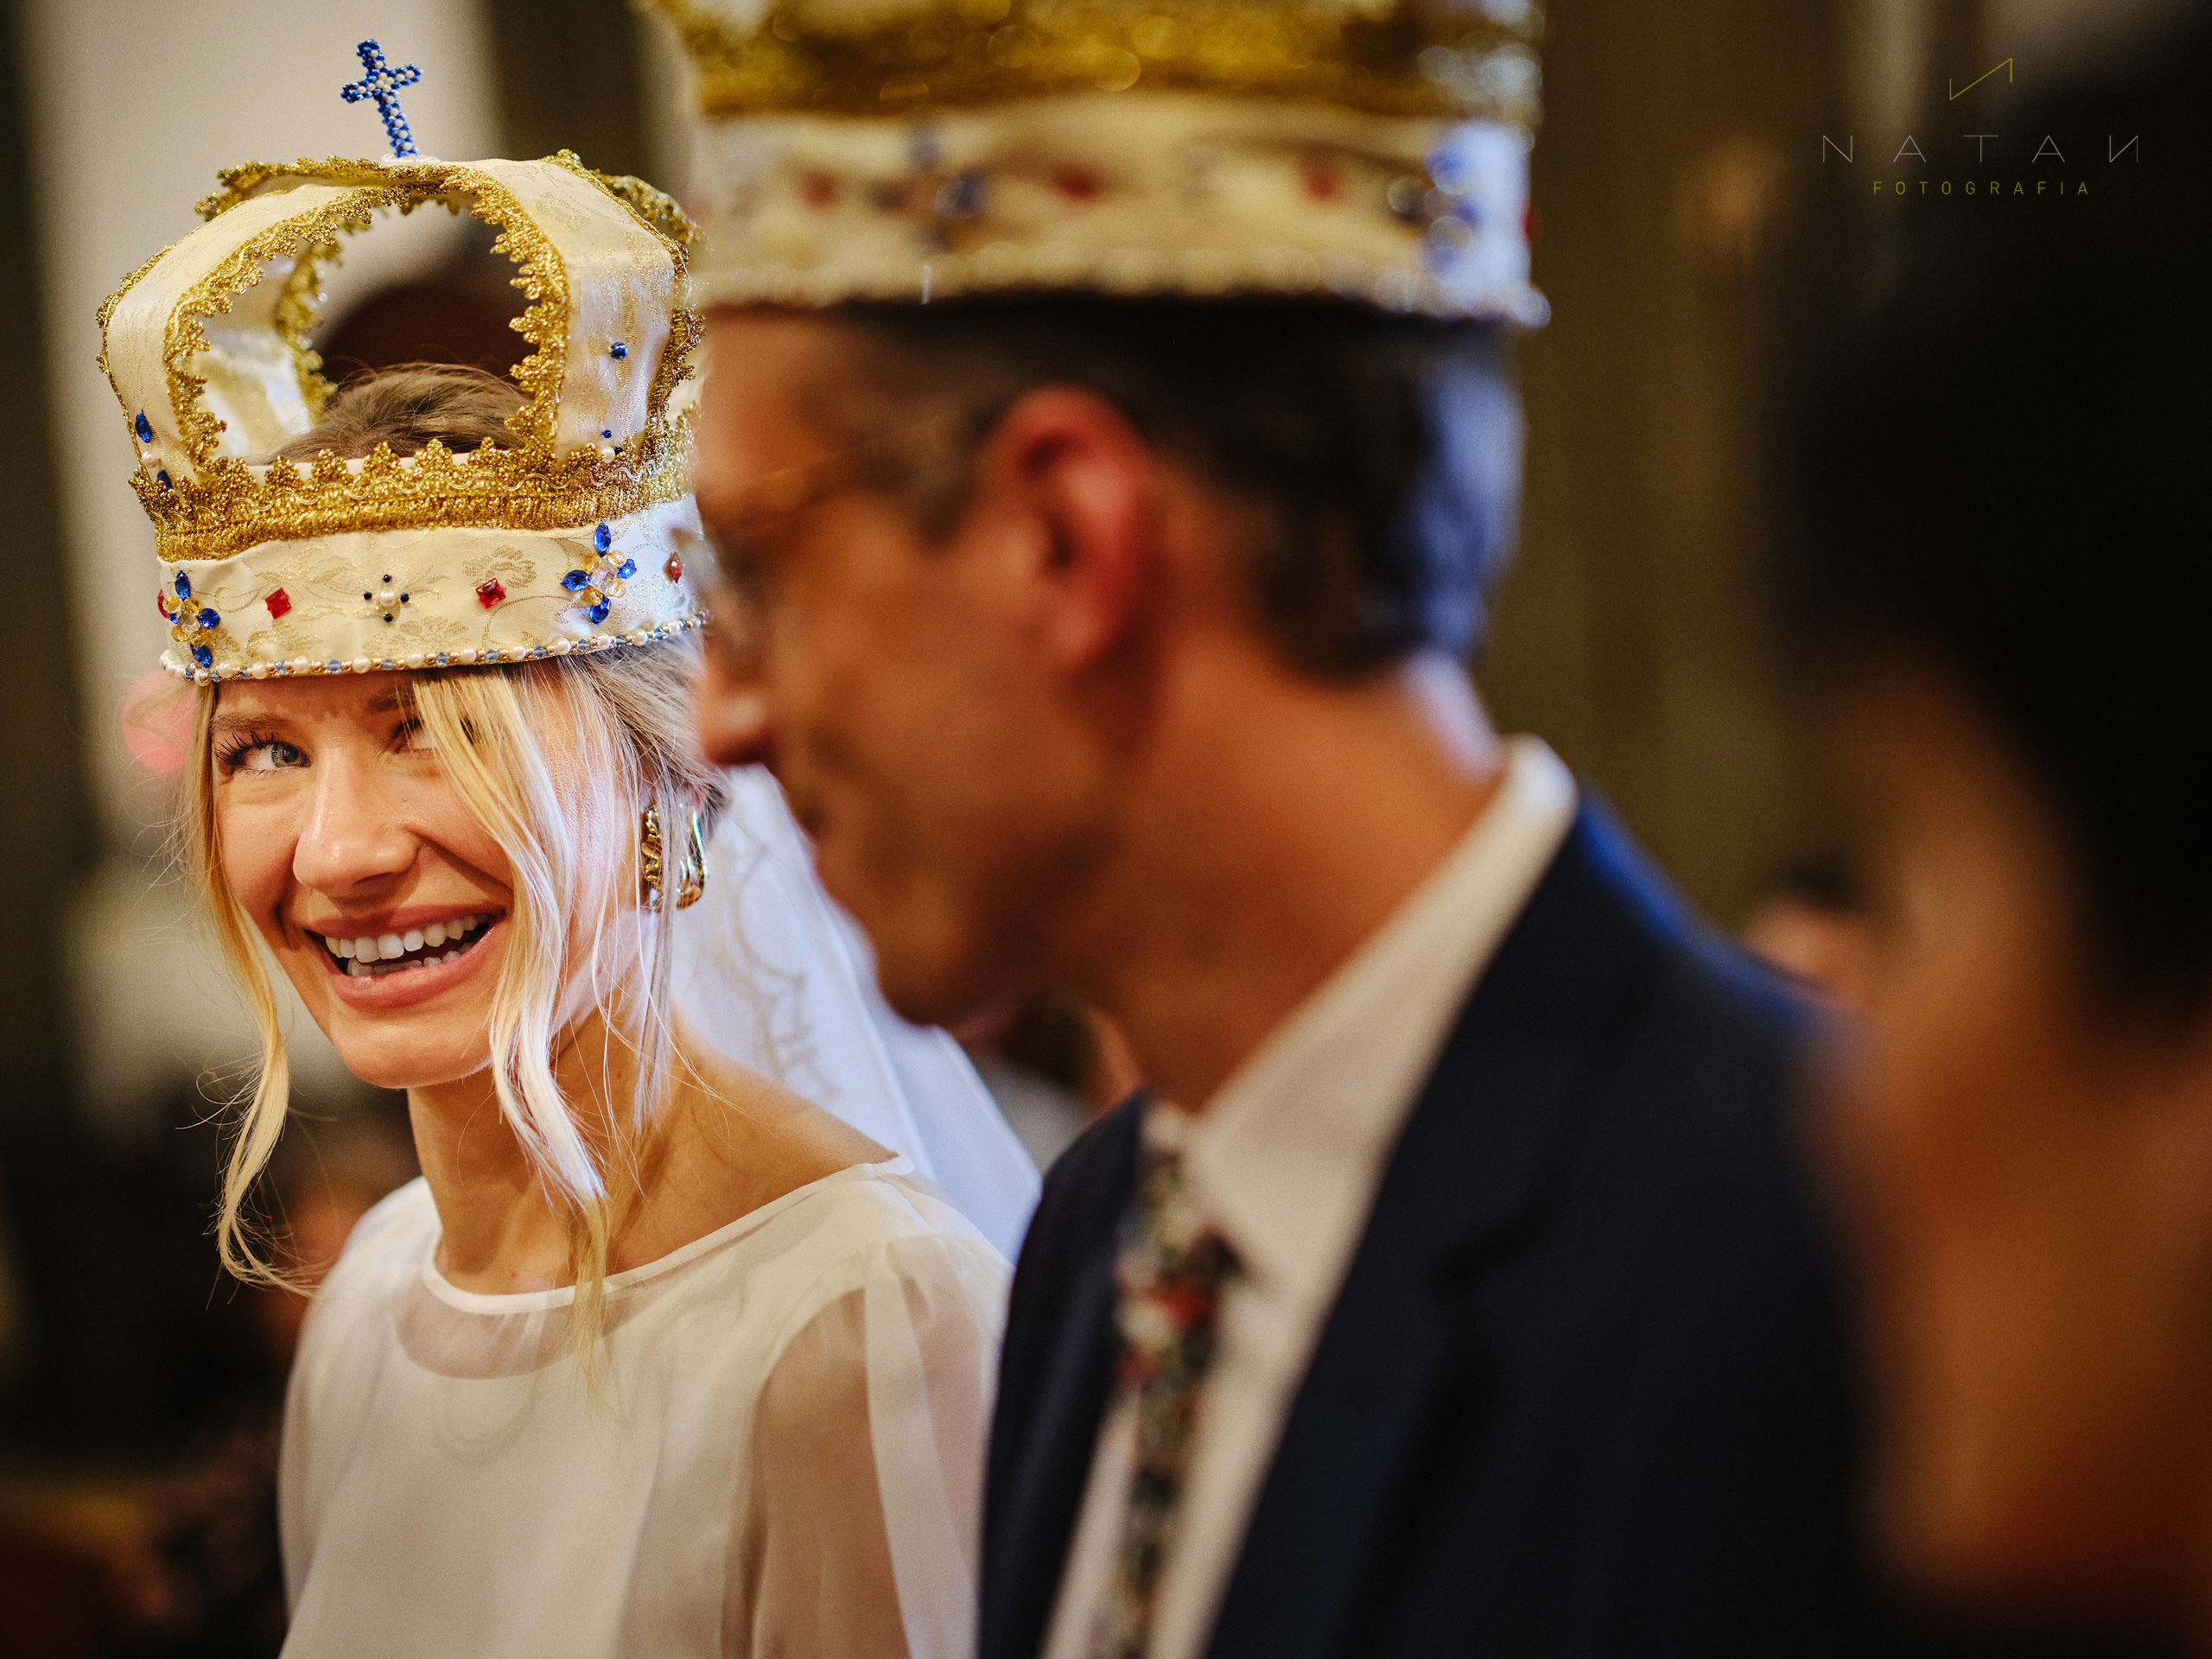 funny moment of bride in orthodox wedding